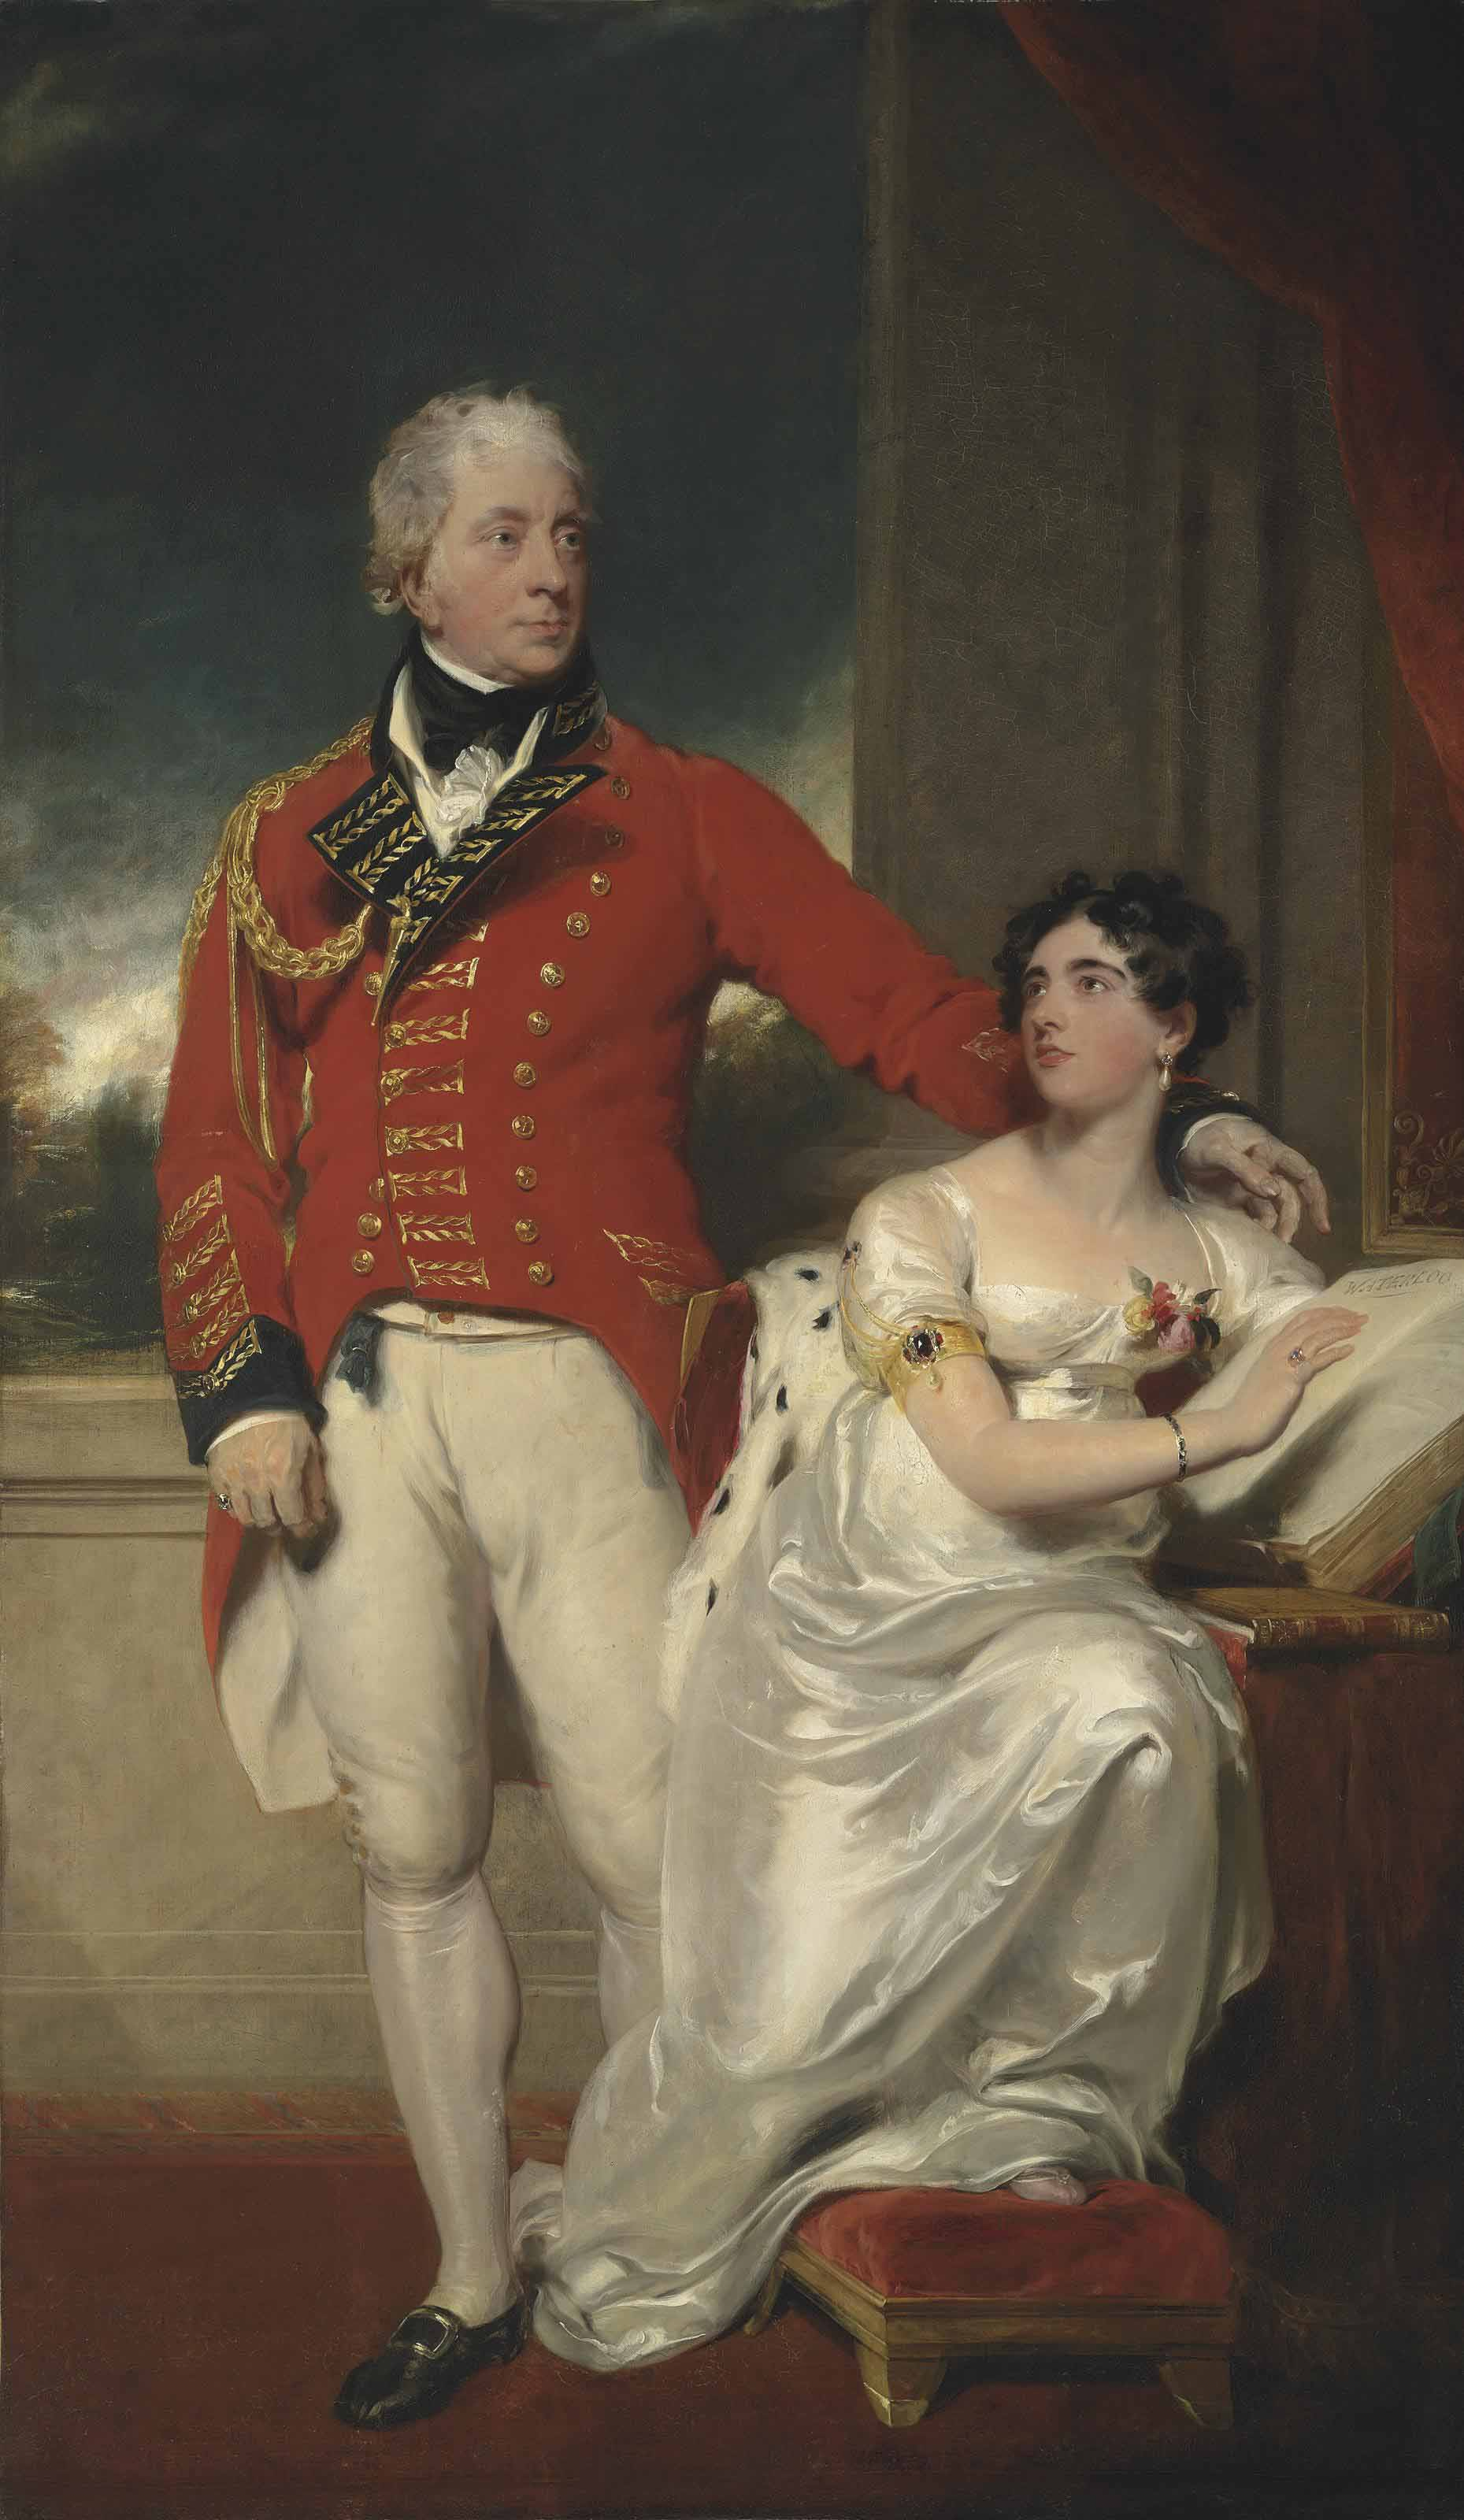 Portrait of General Albemarle Bertie, 9th Earl of Lindsey (1744-1818) and his second wife, Charlotte Susanna Elizabeth (1780-1858), daughter of the Rev. Charles Peter Layard, Dean of Bristol, full-length, he in military uniform, she in a white dress